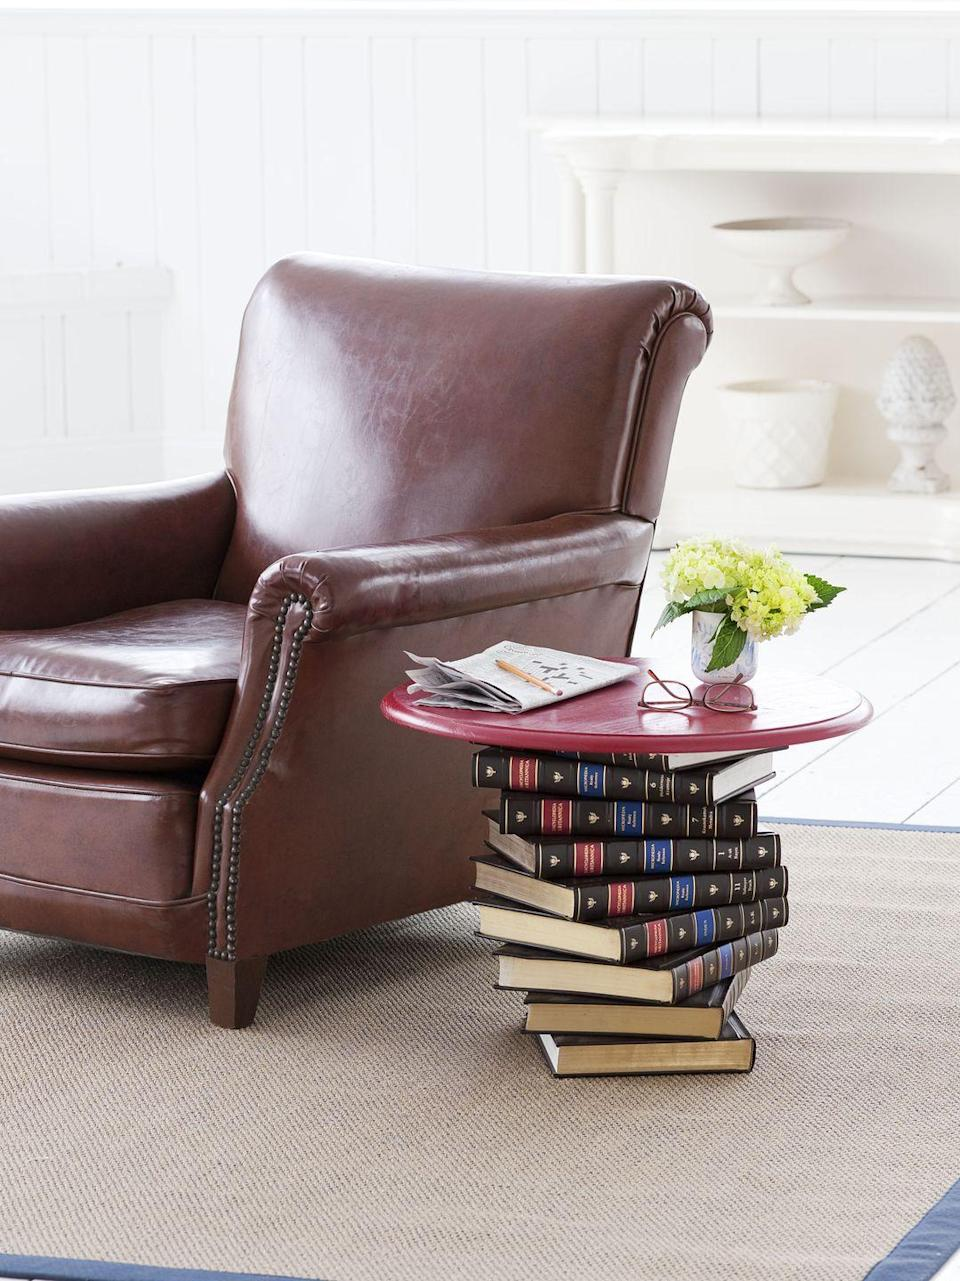 <p>Put your dusty encyclopedias to good use with this side table. To assemble, cut trim to form a box frame that fits snugly around one book, nail it to the tabletop's underside, and paint the top. Drill a hole the size of dowel through each book's center and glue the dowel to the center of the table's underside. Stack encyclopedias, lining up holes, and twisting (as shown). Skewer the dowel through the holes to secure them to the tabletop </p>